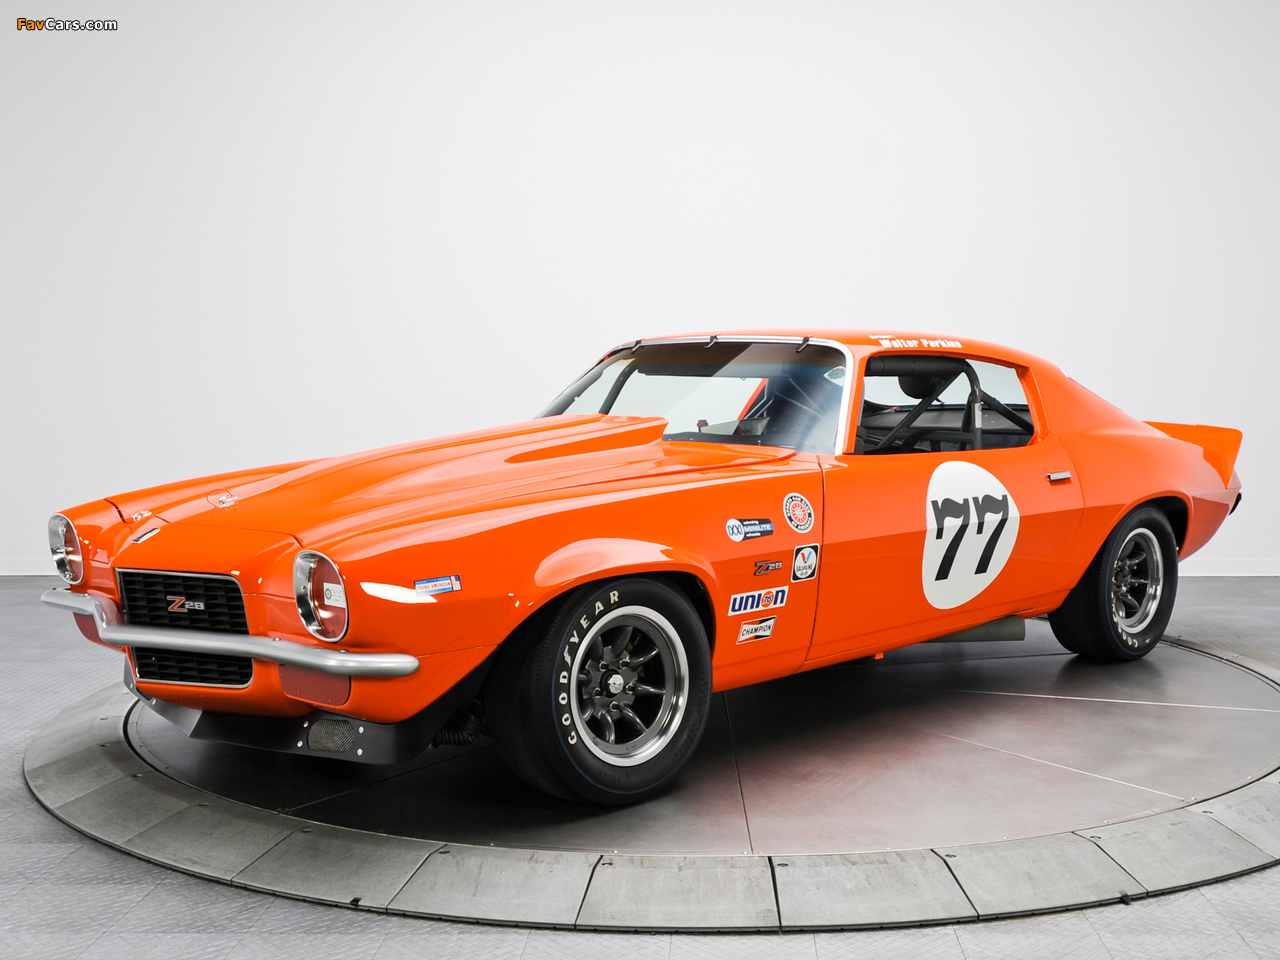 1969 Camaro Pro Street For Sale besides Wallpapers De Muscle Cars Yapa likewise Images Chevrolet Camaro Z28 Trans Am Race Car 1970 233374 1280x960 also Big as well Carros Tunadoscarros Tuning. on old camaros cars wallpapers